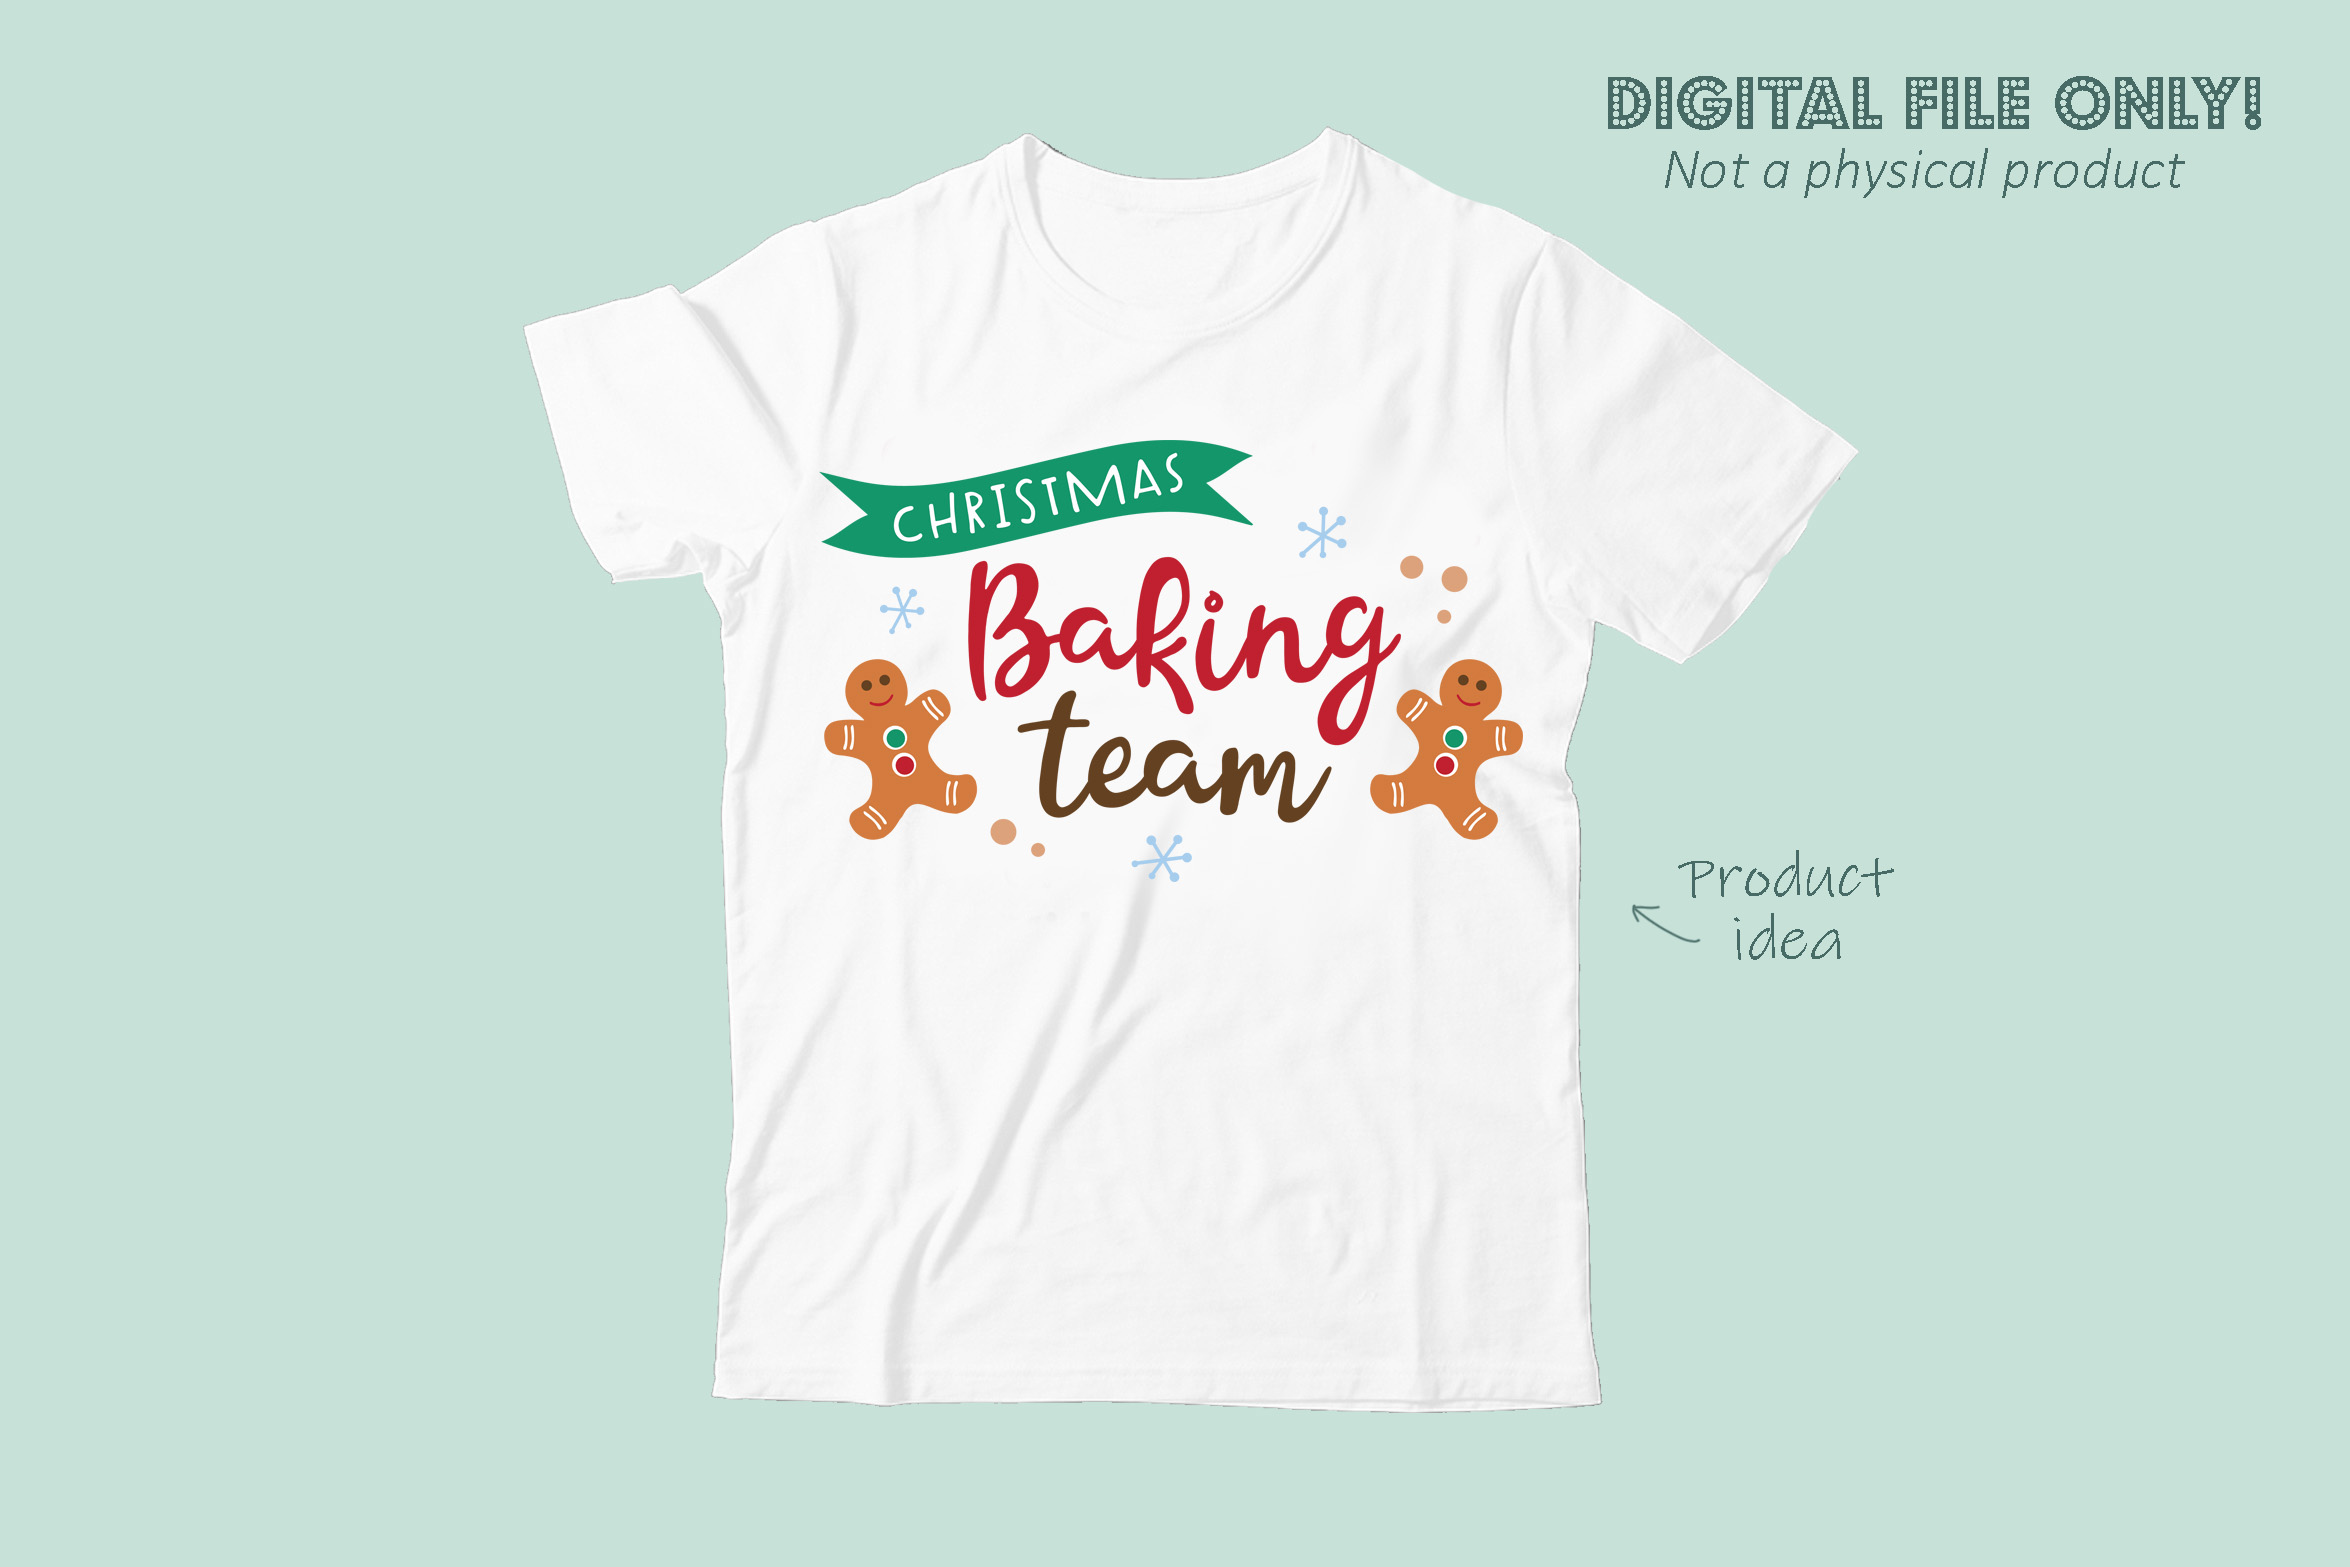 Christmas baking team SVG file example image 3